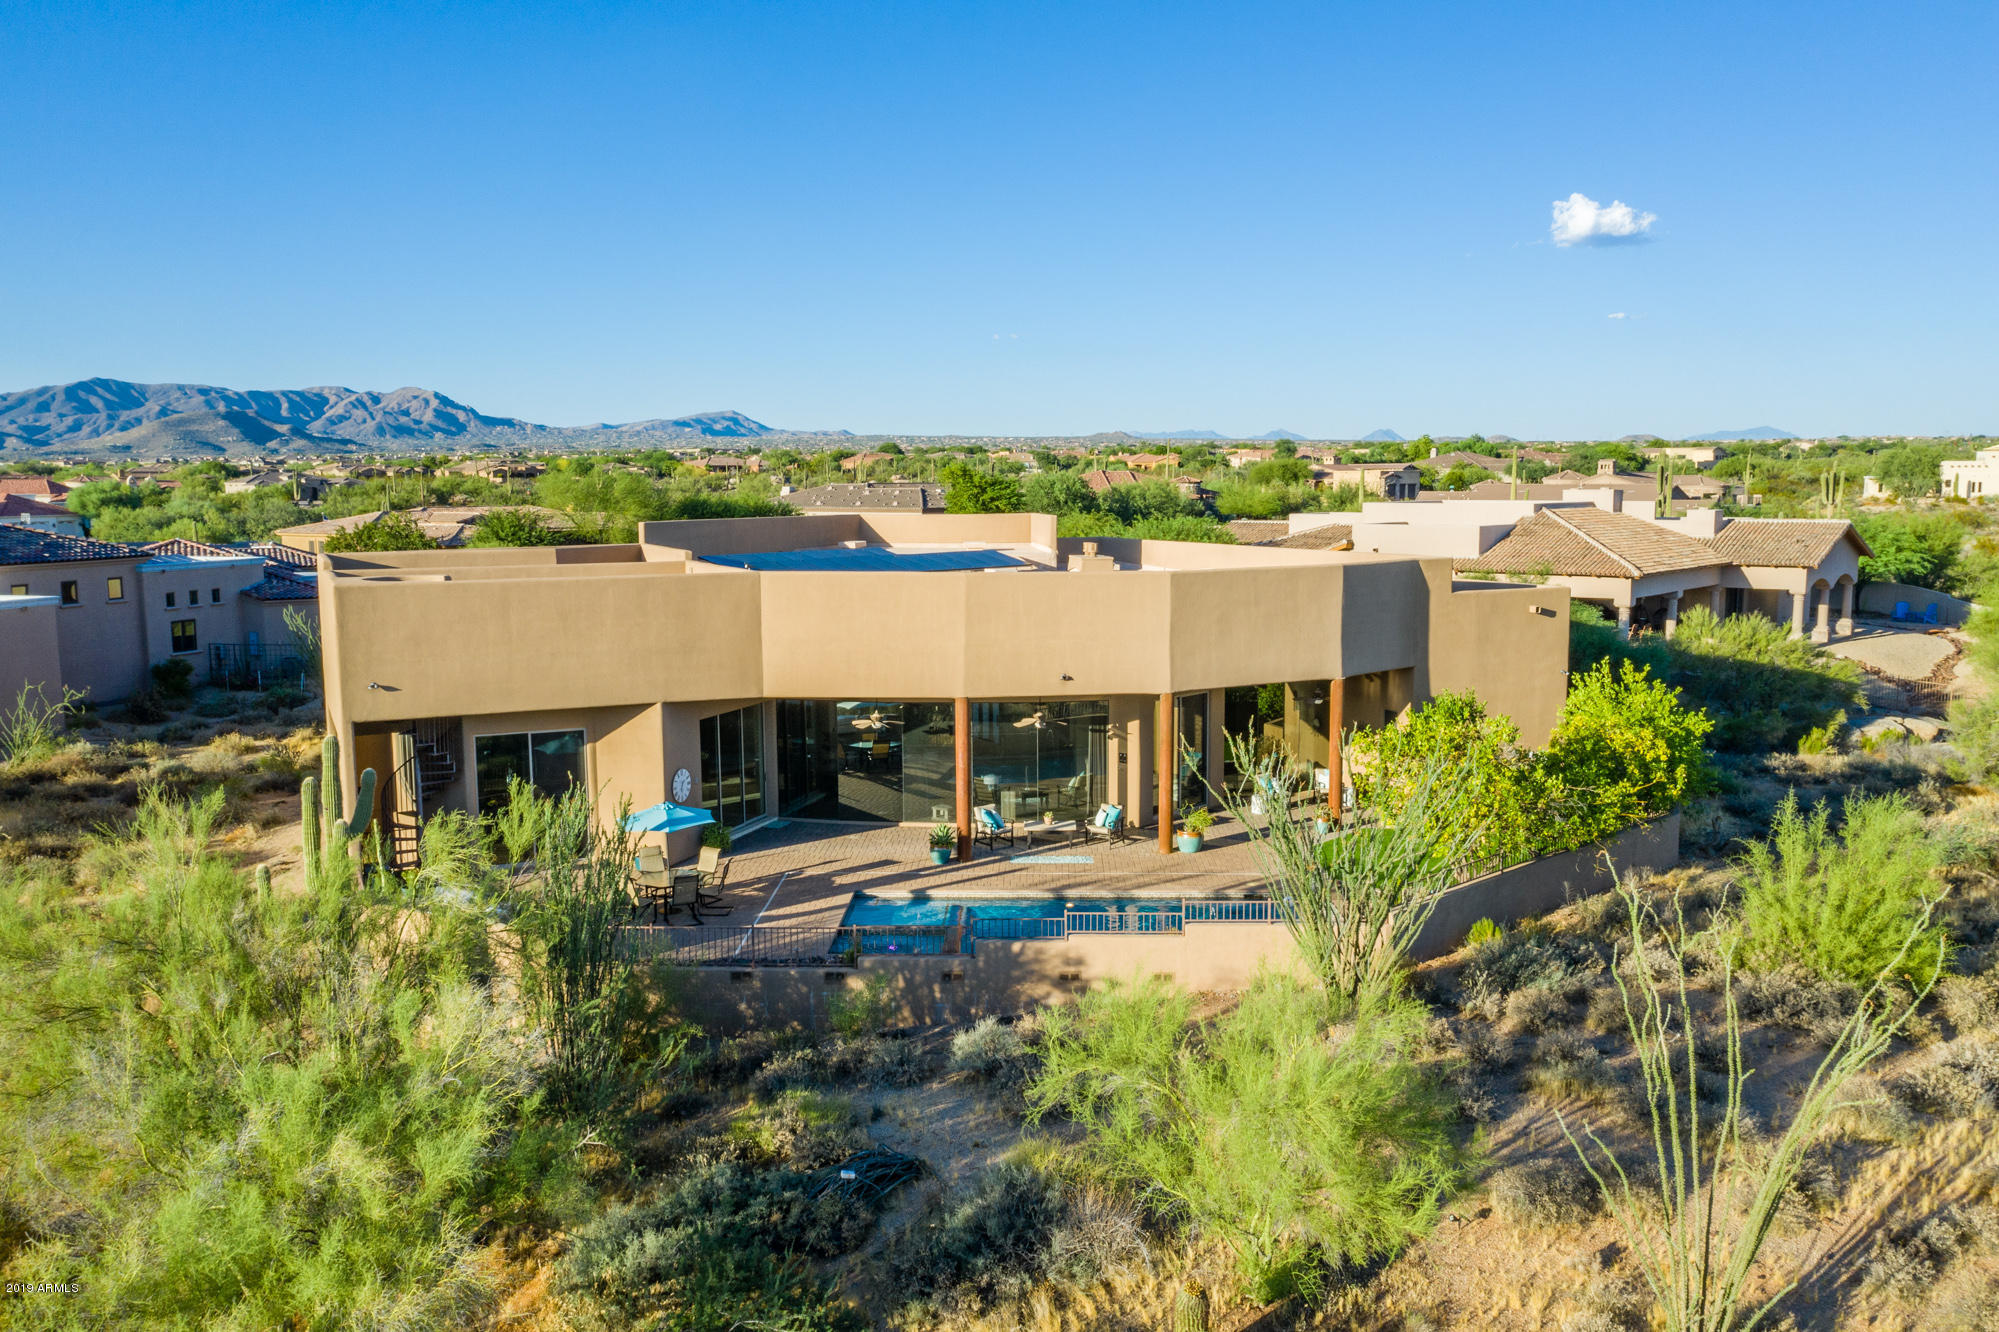 MLS 5968148 8227 E GRANITE PASS Road, Scottsdale, AZ 85266 Scottsdale AZ Private Pool